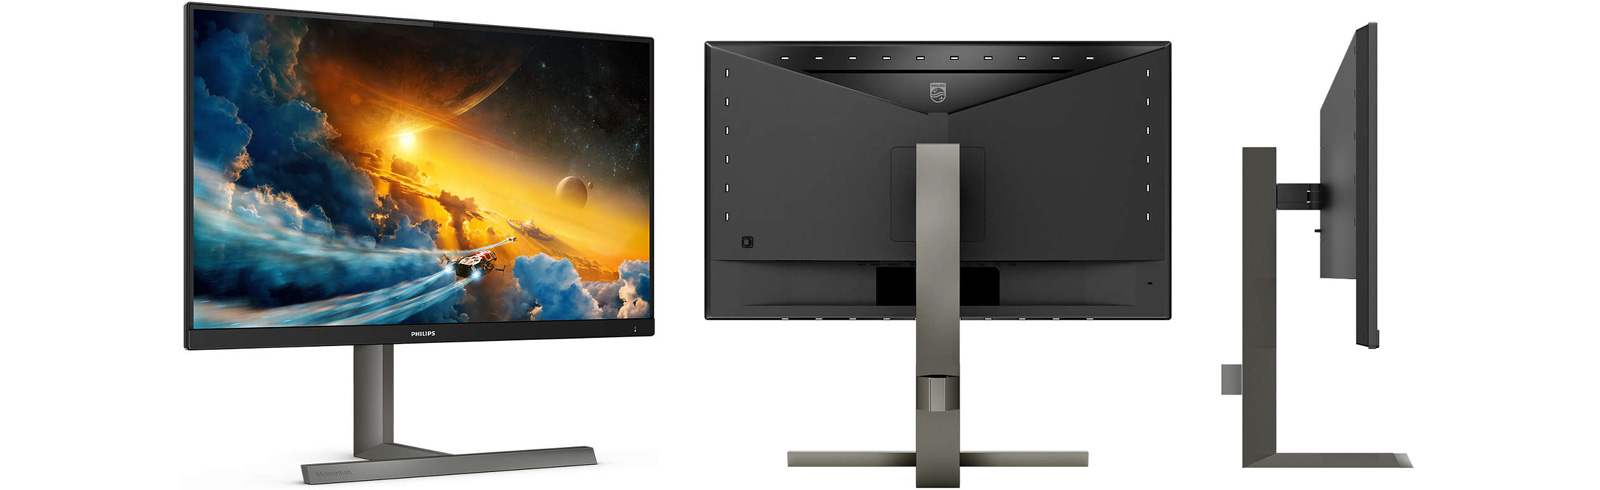 The Philips 275M1RZ monitors is the latest model from the Momentum series for console gaming